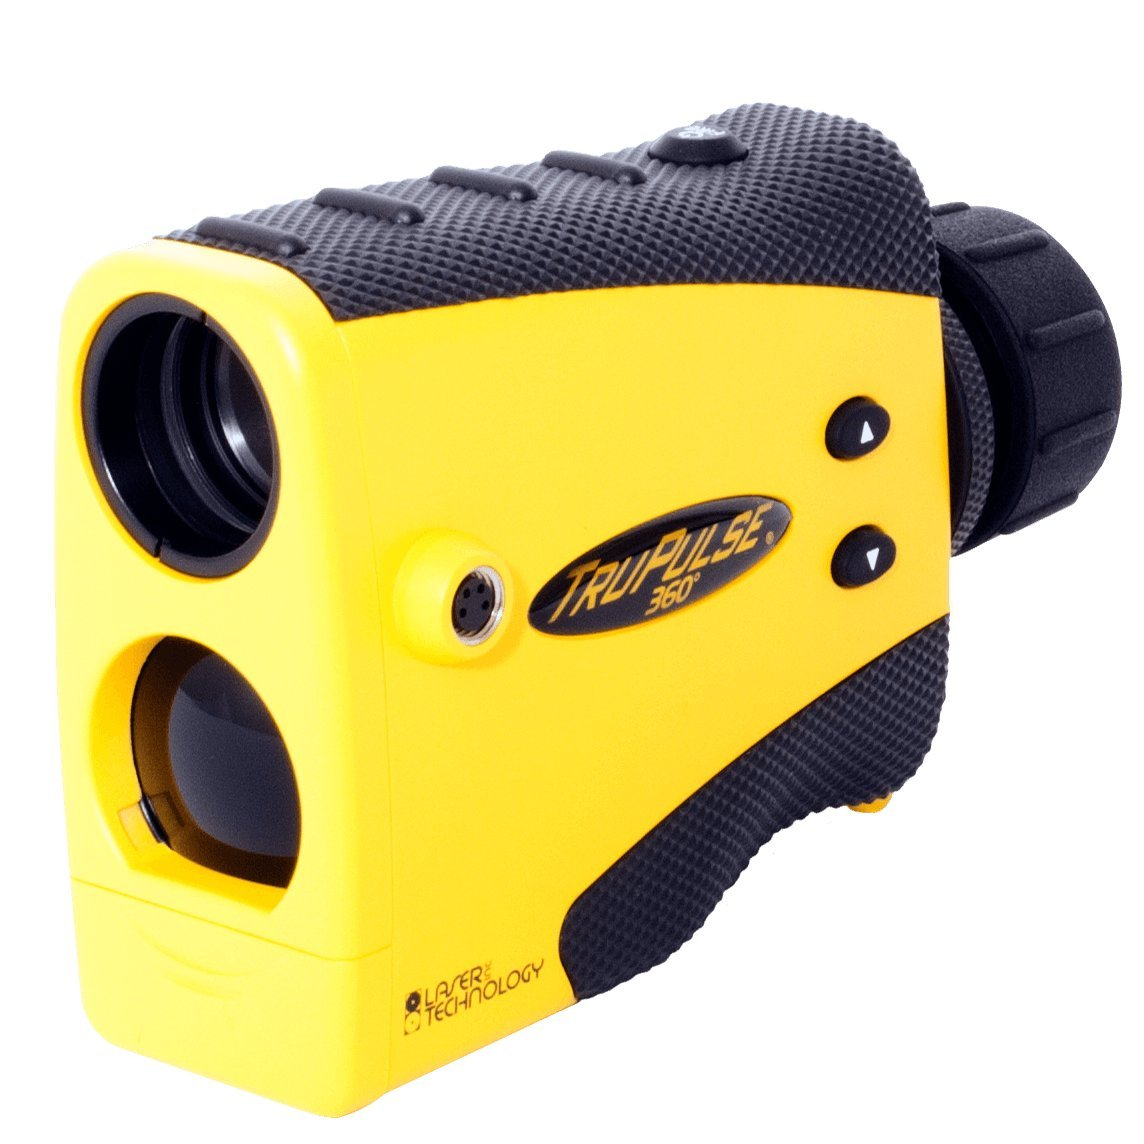 TruPulse Laser Technology 360B Laser Rangefinder (Feet and Yards Only) by TruPulse